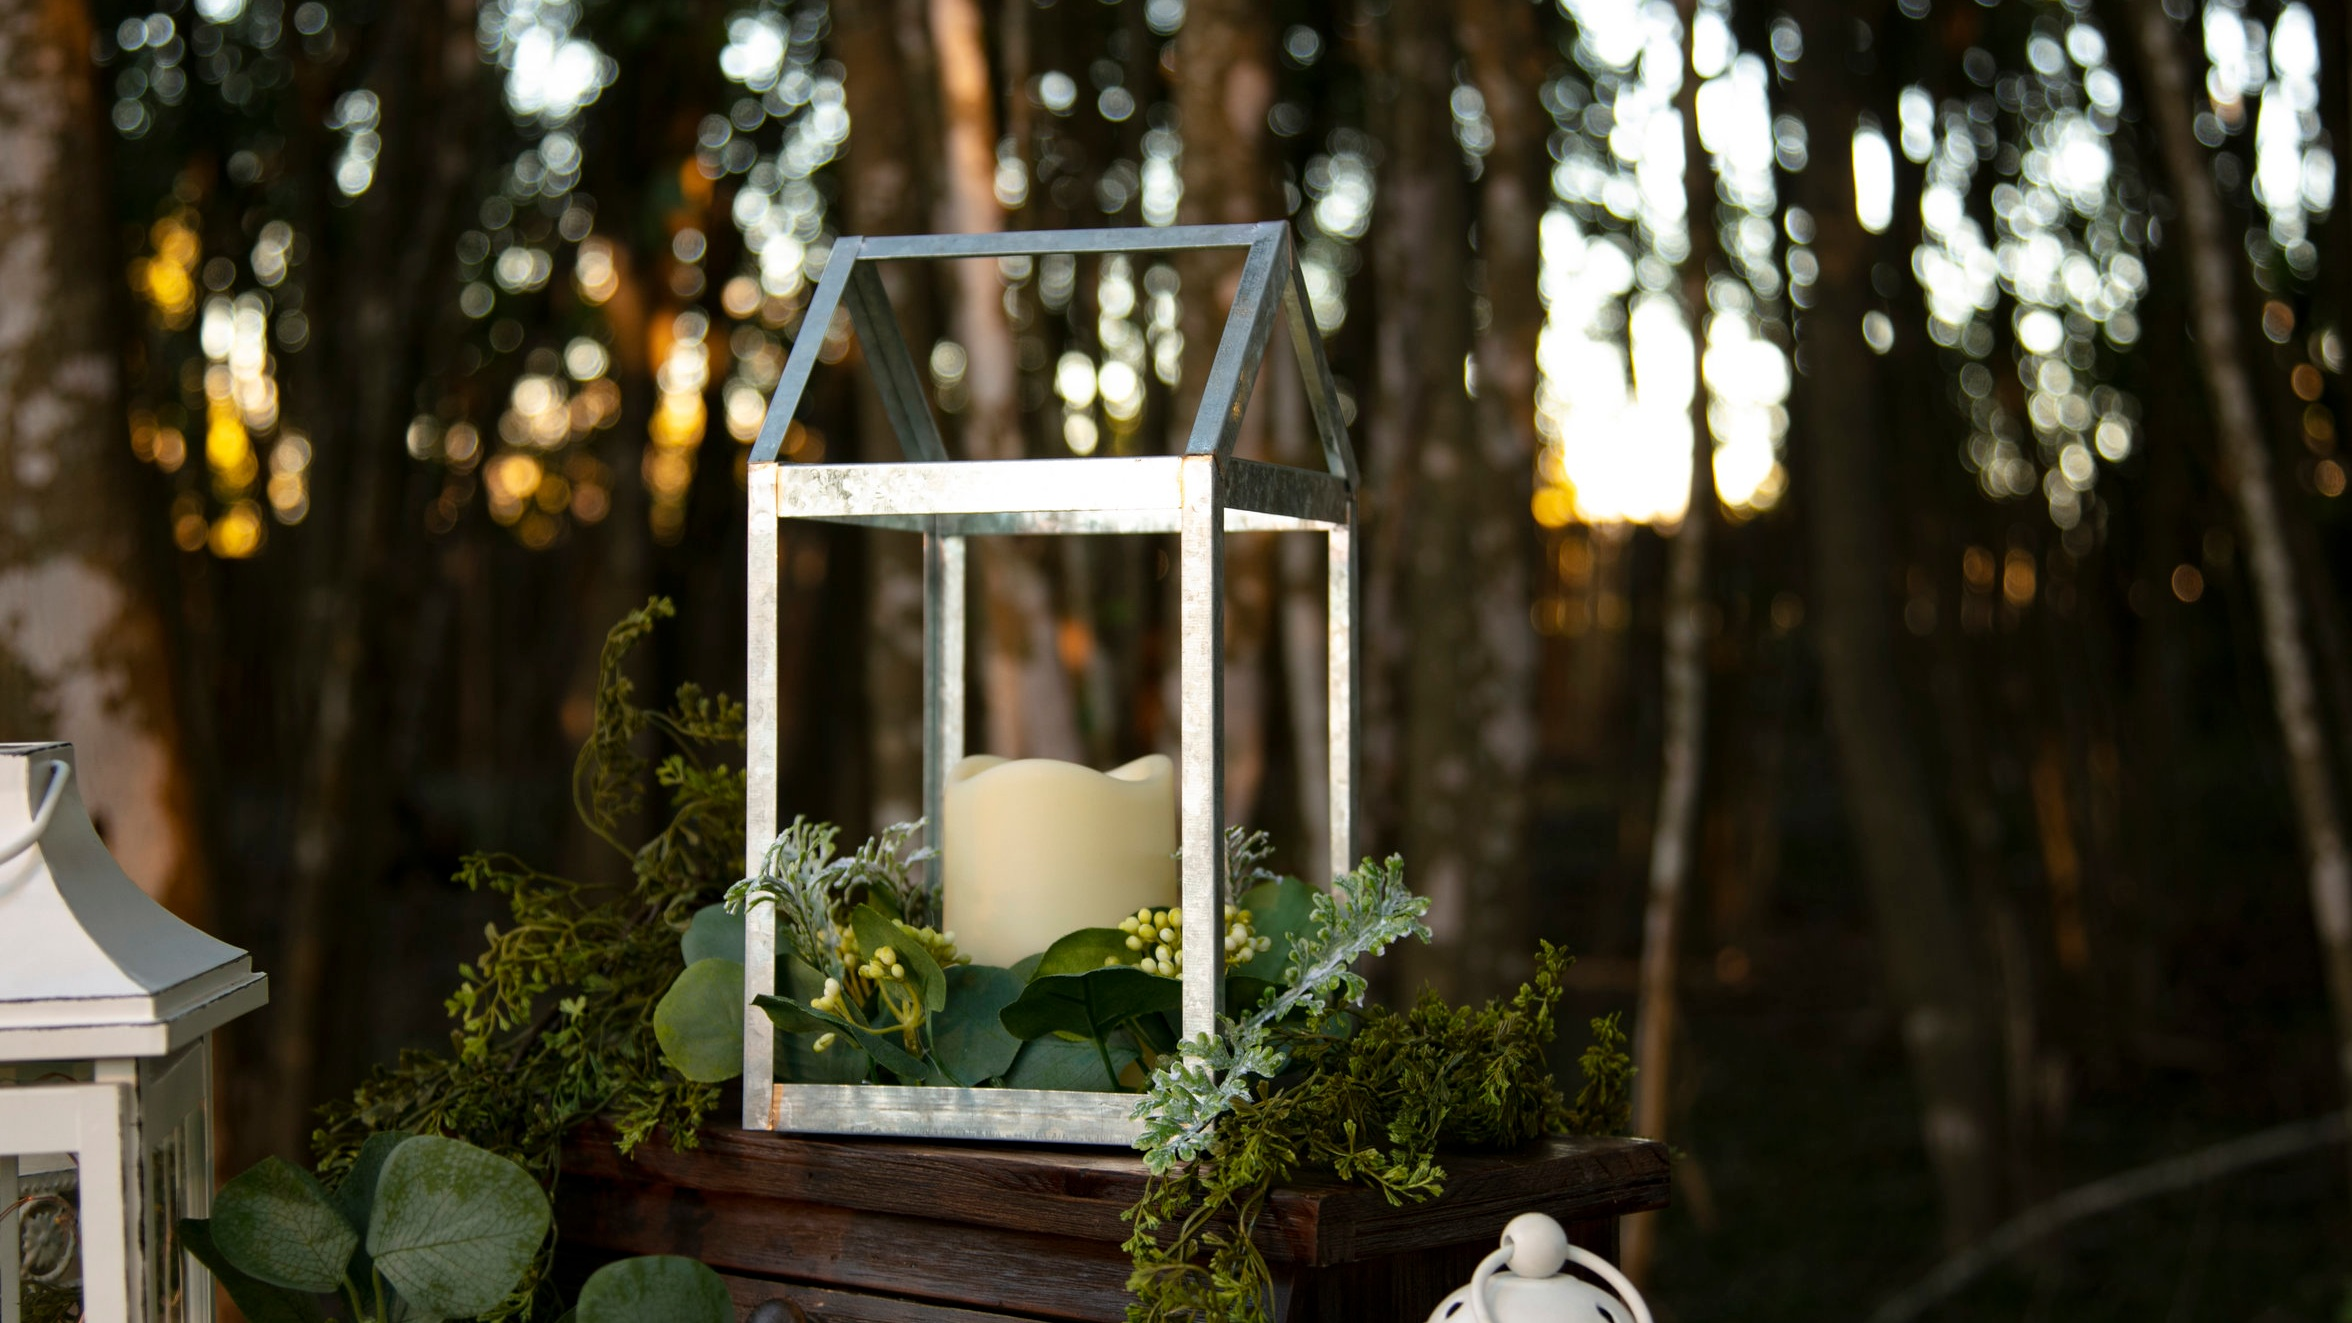 Galvanized Metal Lantern with Greenery and LED Candle  Qty: 10  Price: $15.00 each O/ $100.00 for all 10